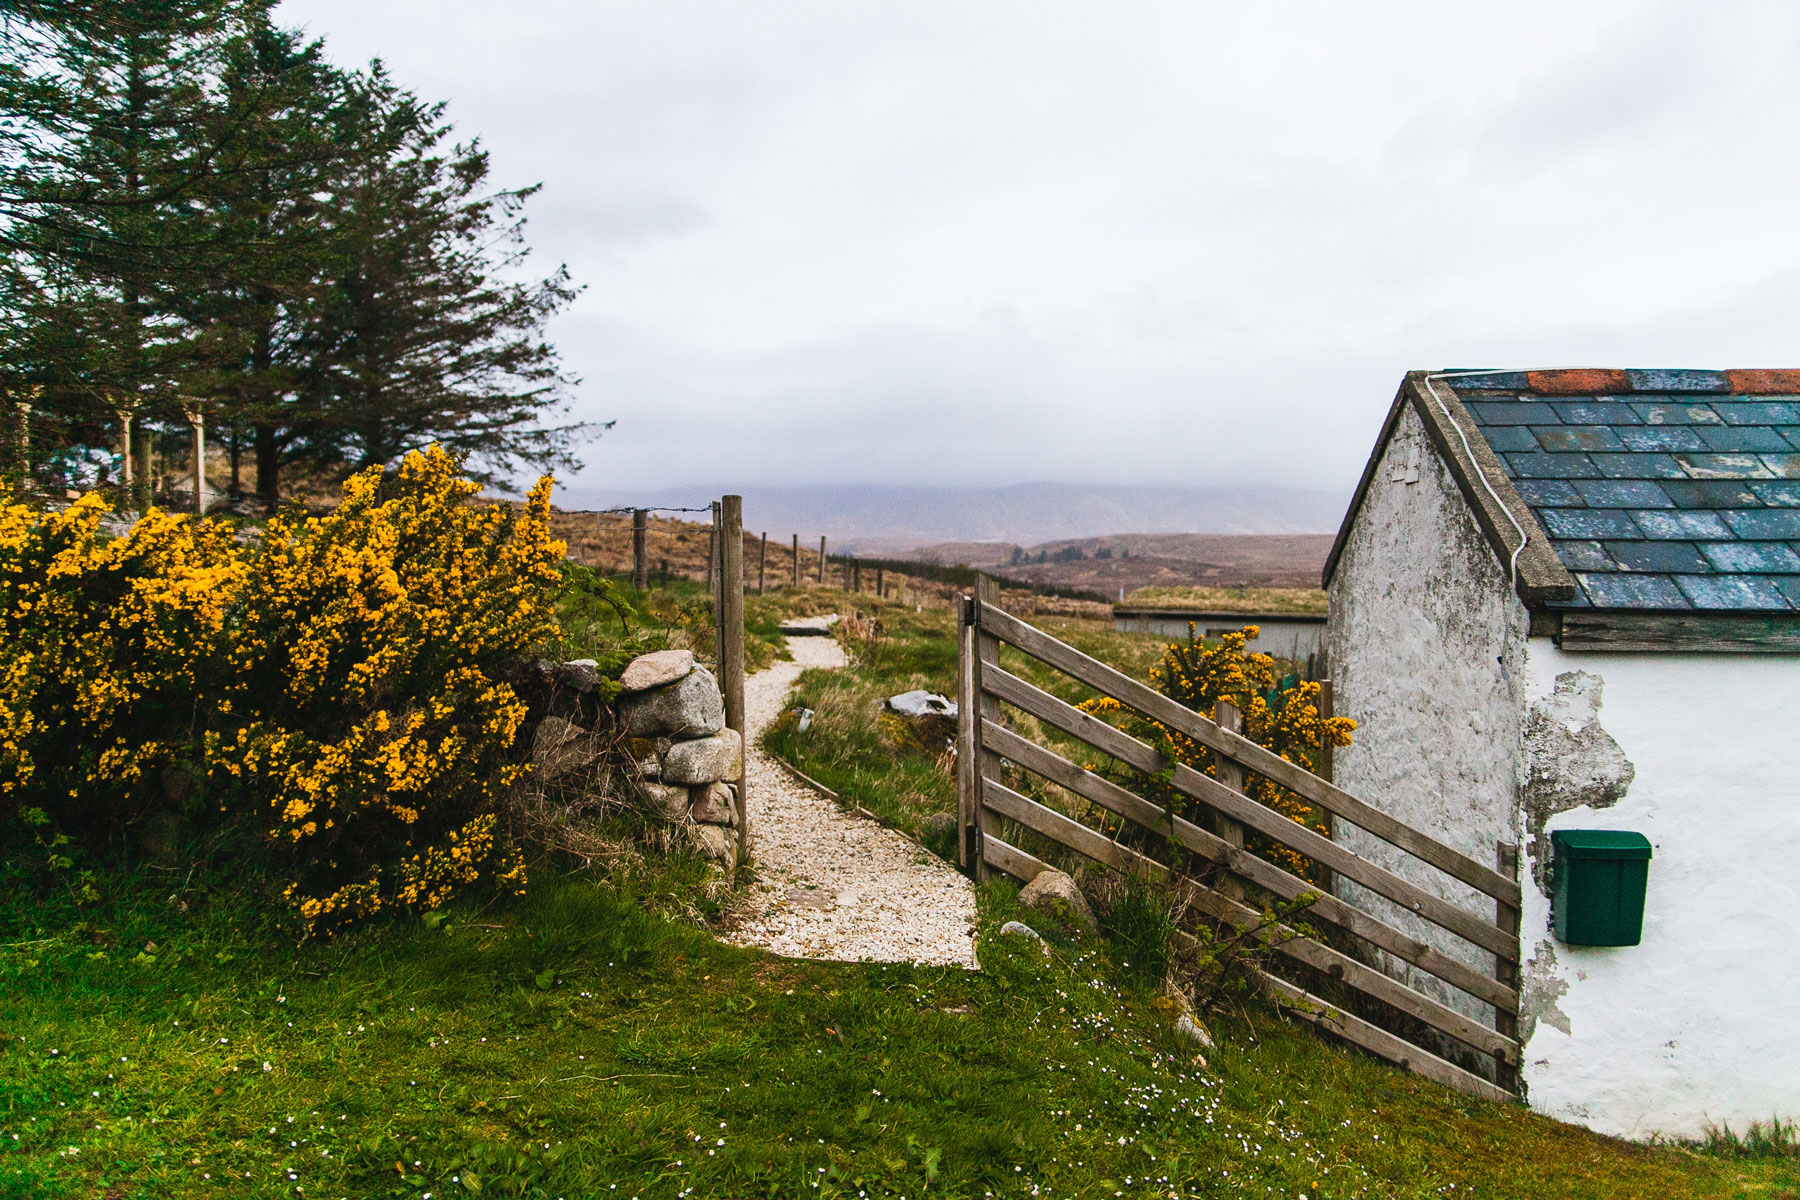 In an article about Irish immigrants, a photo of Irish countryside